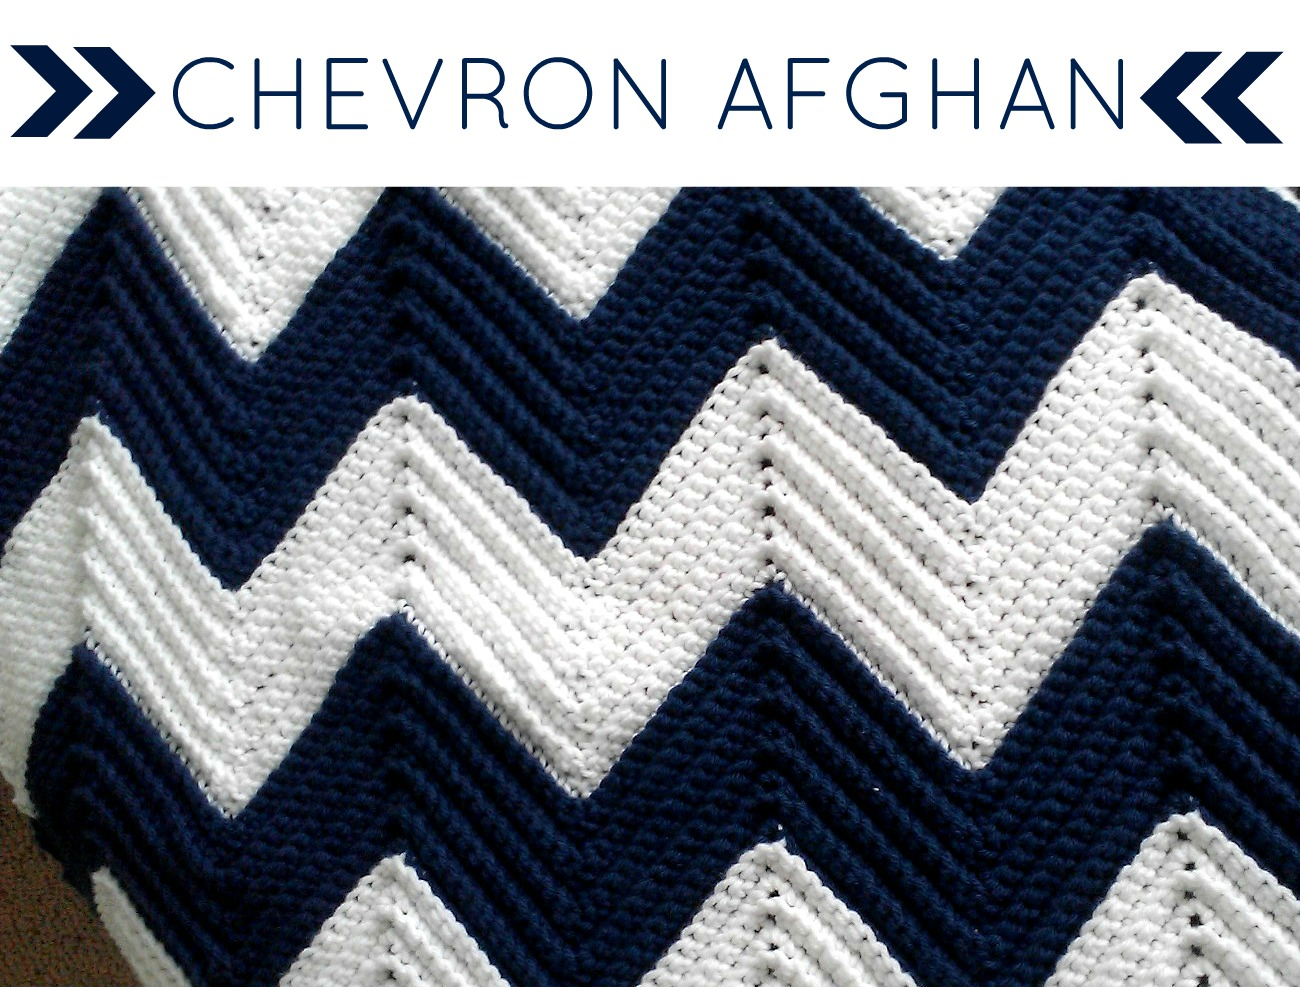 All Things Bright And Beautiful A Gift Of Love Chevron Afghan